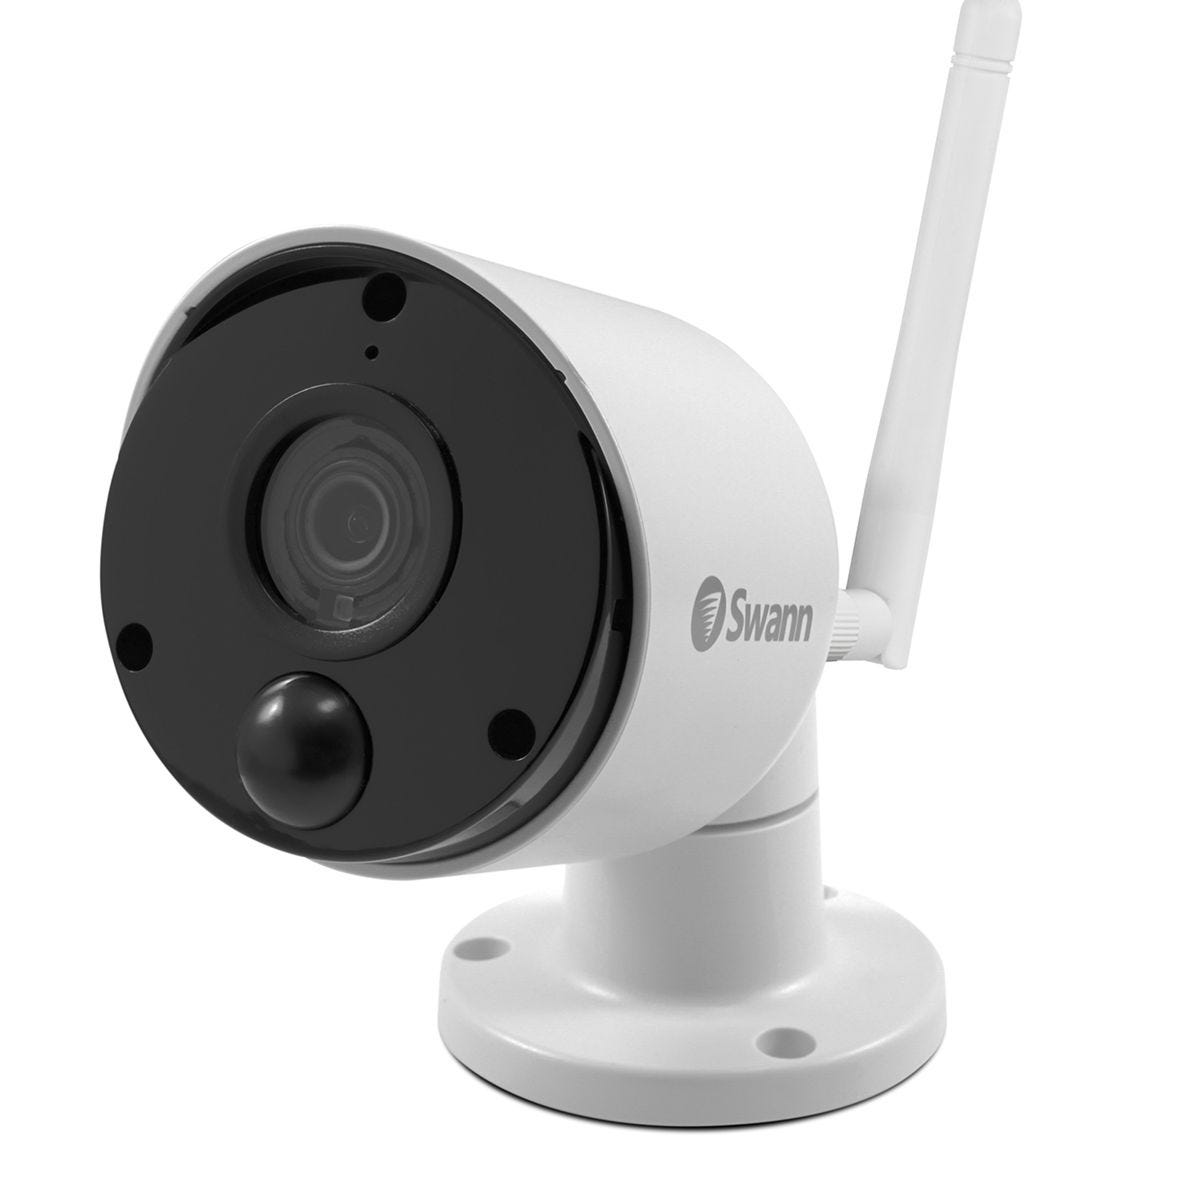 Swann Wi-Fi Security Camera 1080p Full HD - Add On for NVW-490